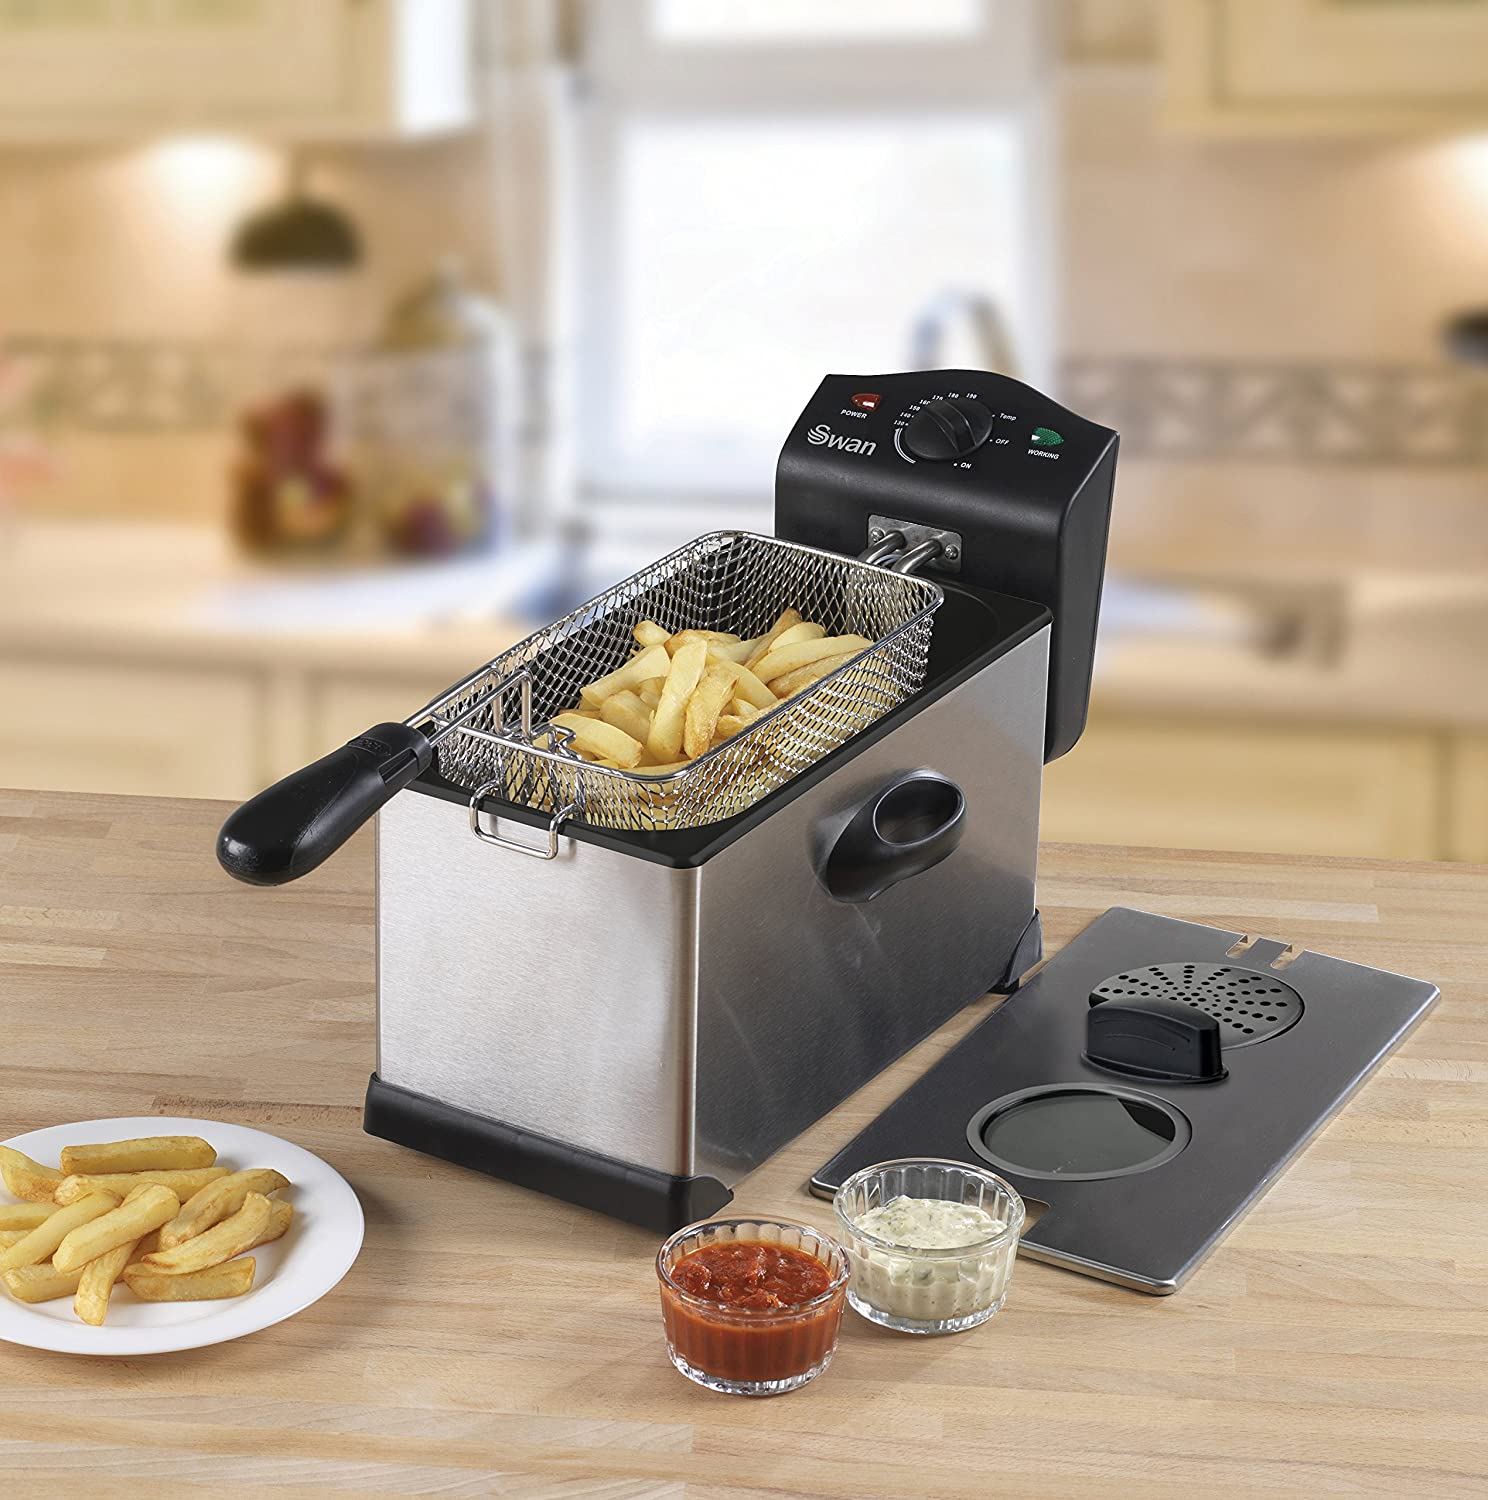 This is a high quality yet cheap deep fat fryer.